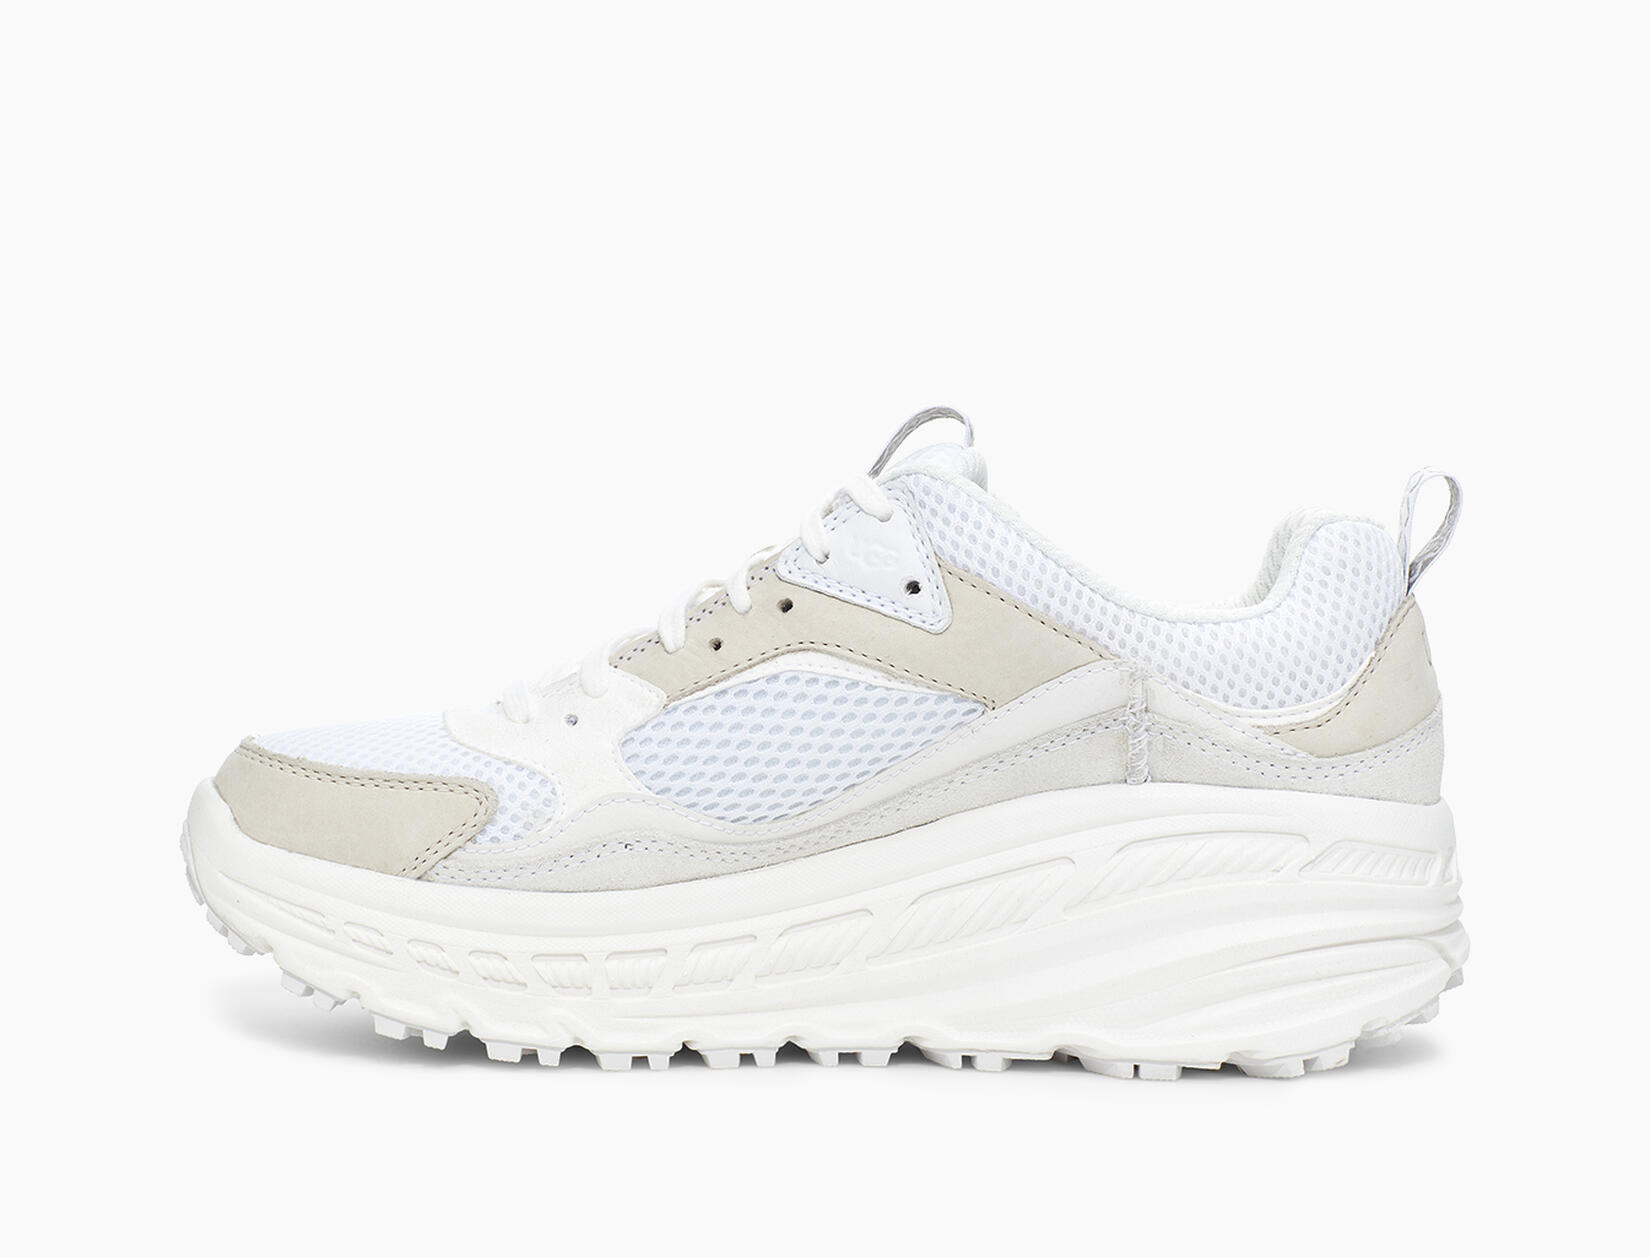 CA805 X Low Mesh Trainer